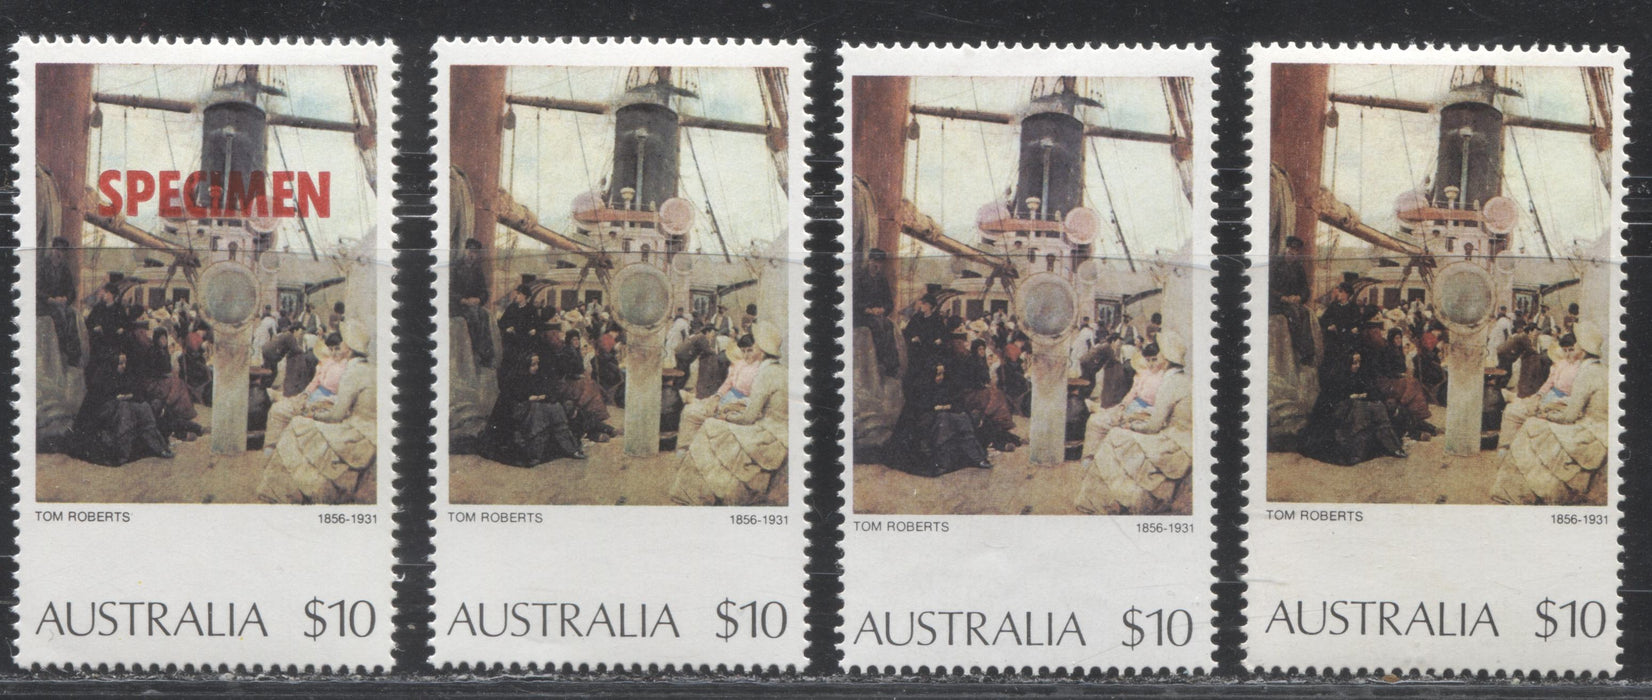 Australia #579 1973-1981 Definitive Issue, A Fine and VFNH Group of 4 of the $10 Values, Each on a Different Paper and Gum, or Printed in a Different Shade, Including a Specimen Overprint